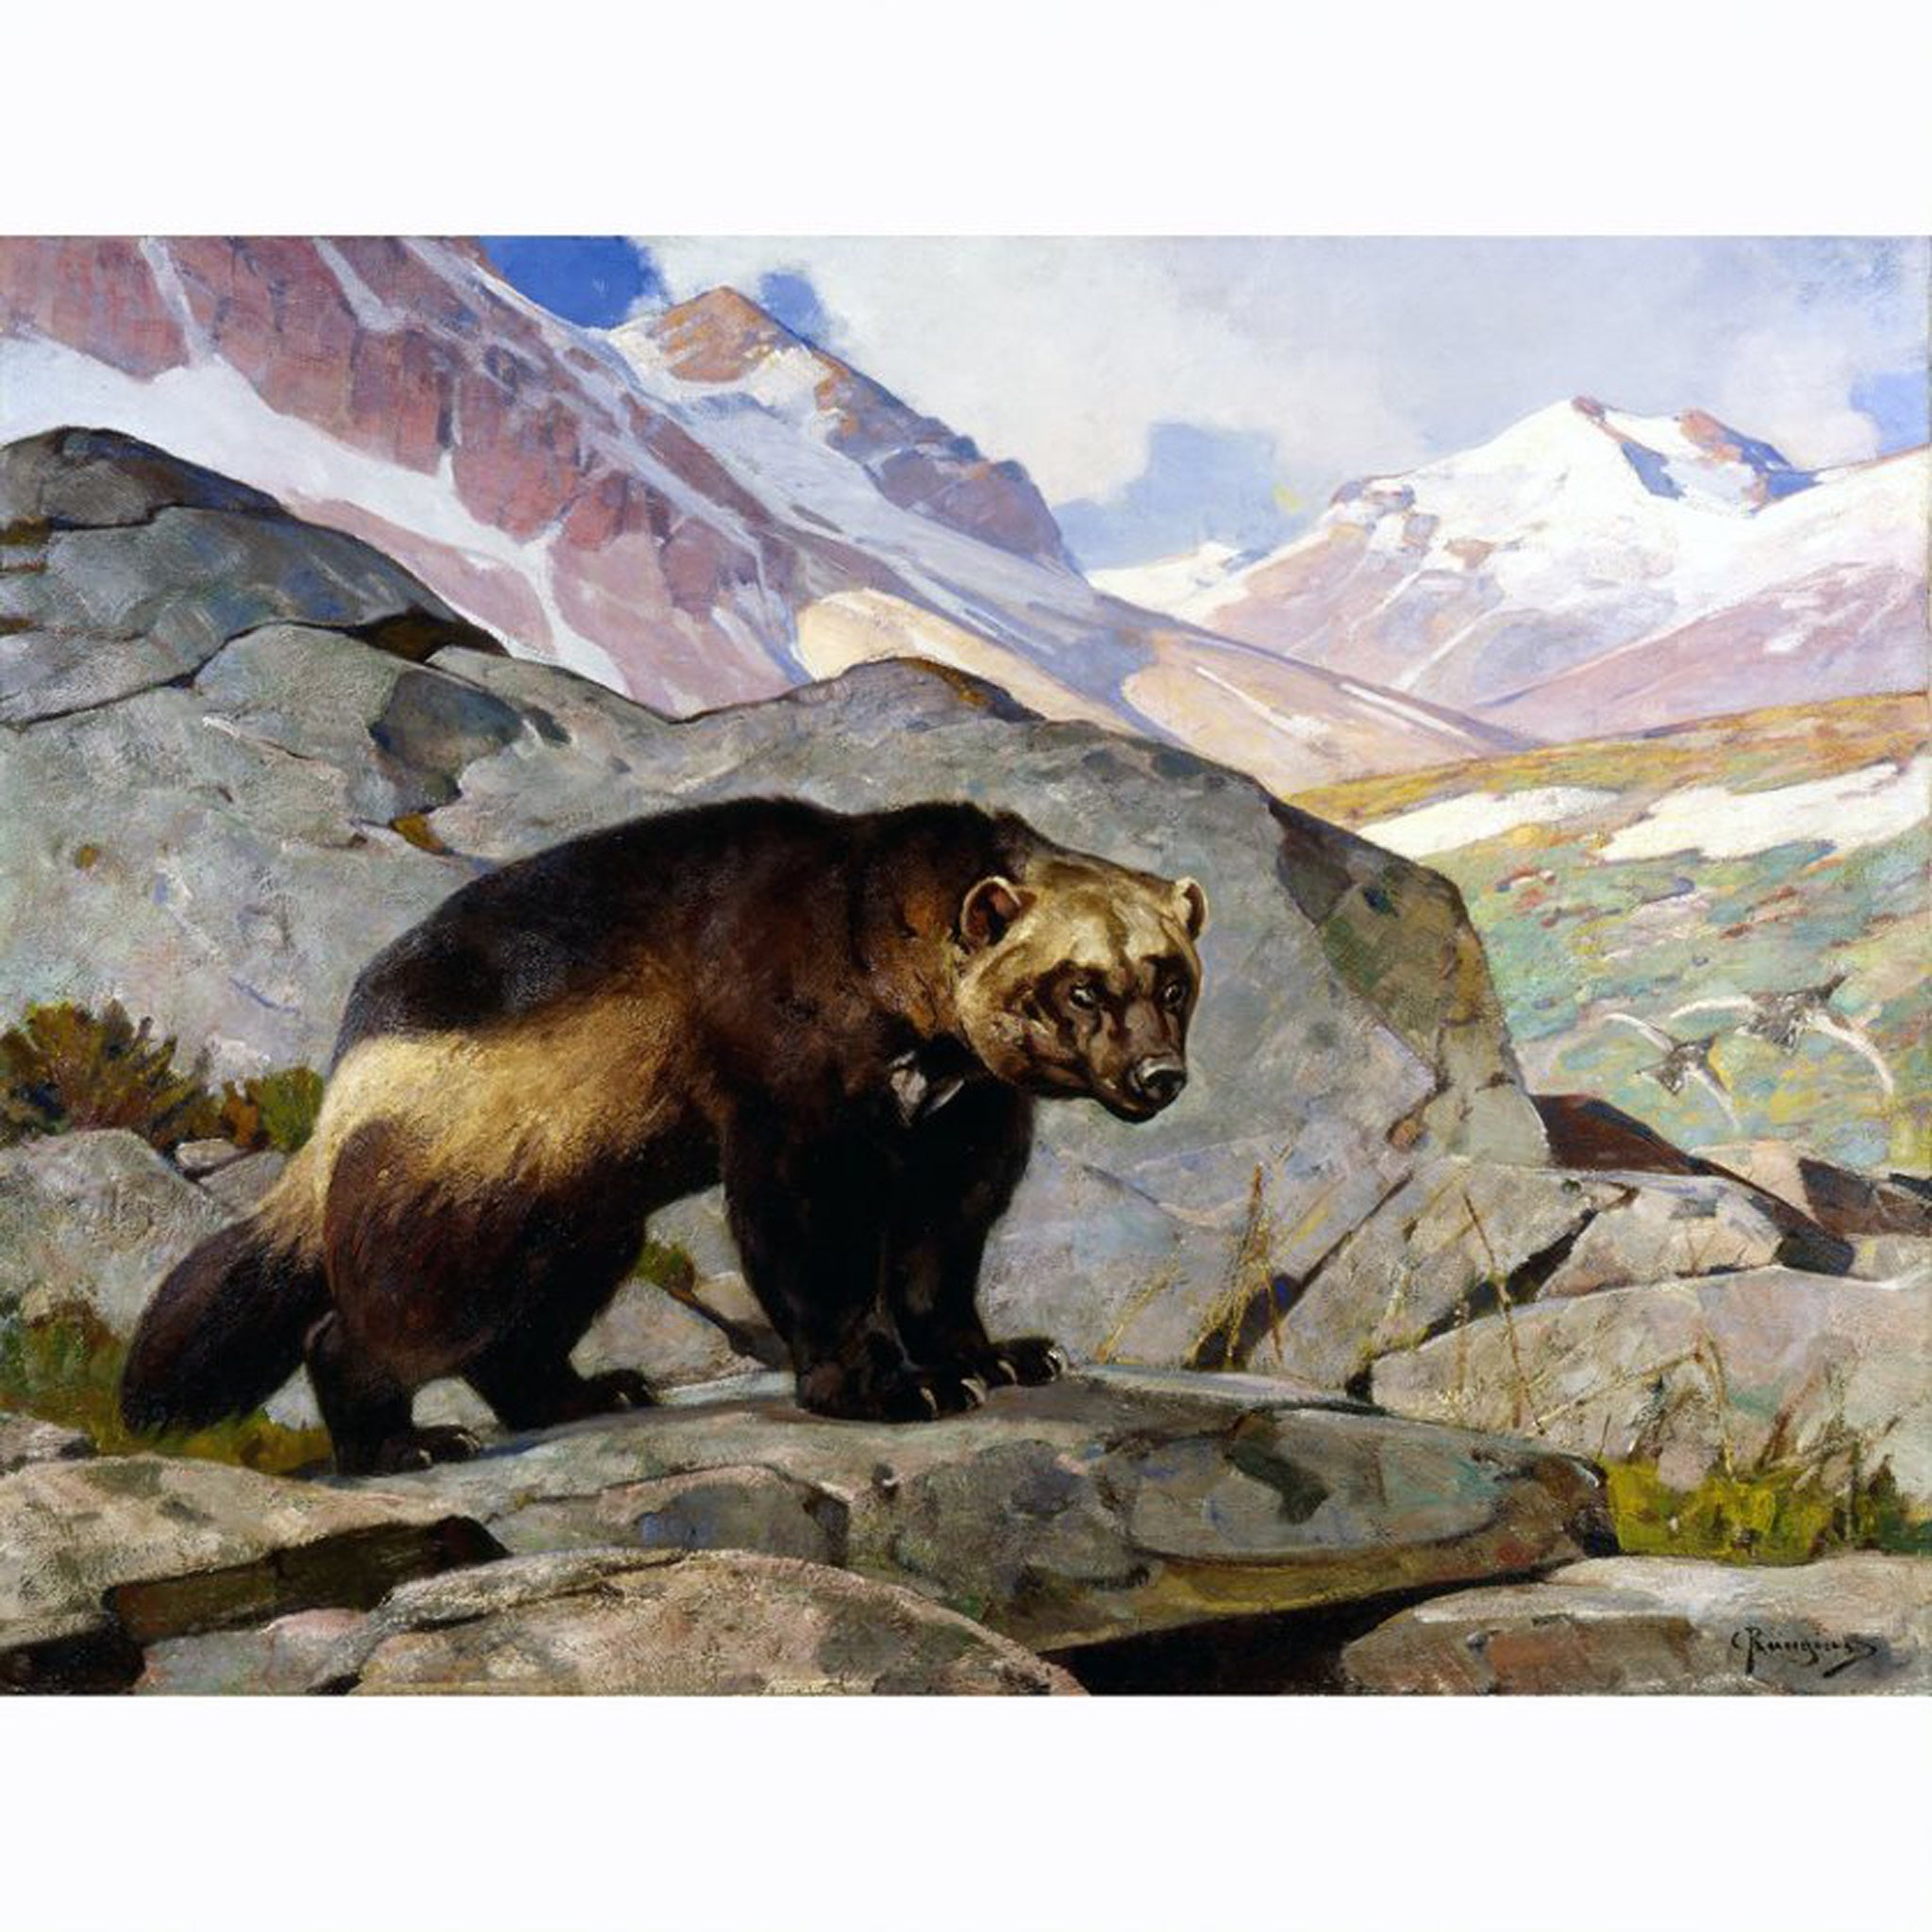 Wolverine in a Rocky Mountain Landscape by Carl Rungius